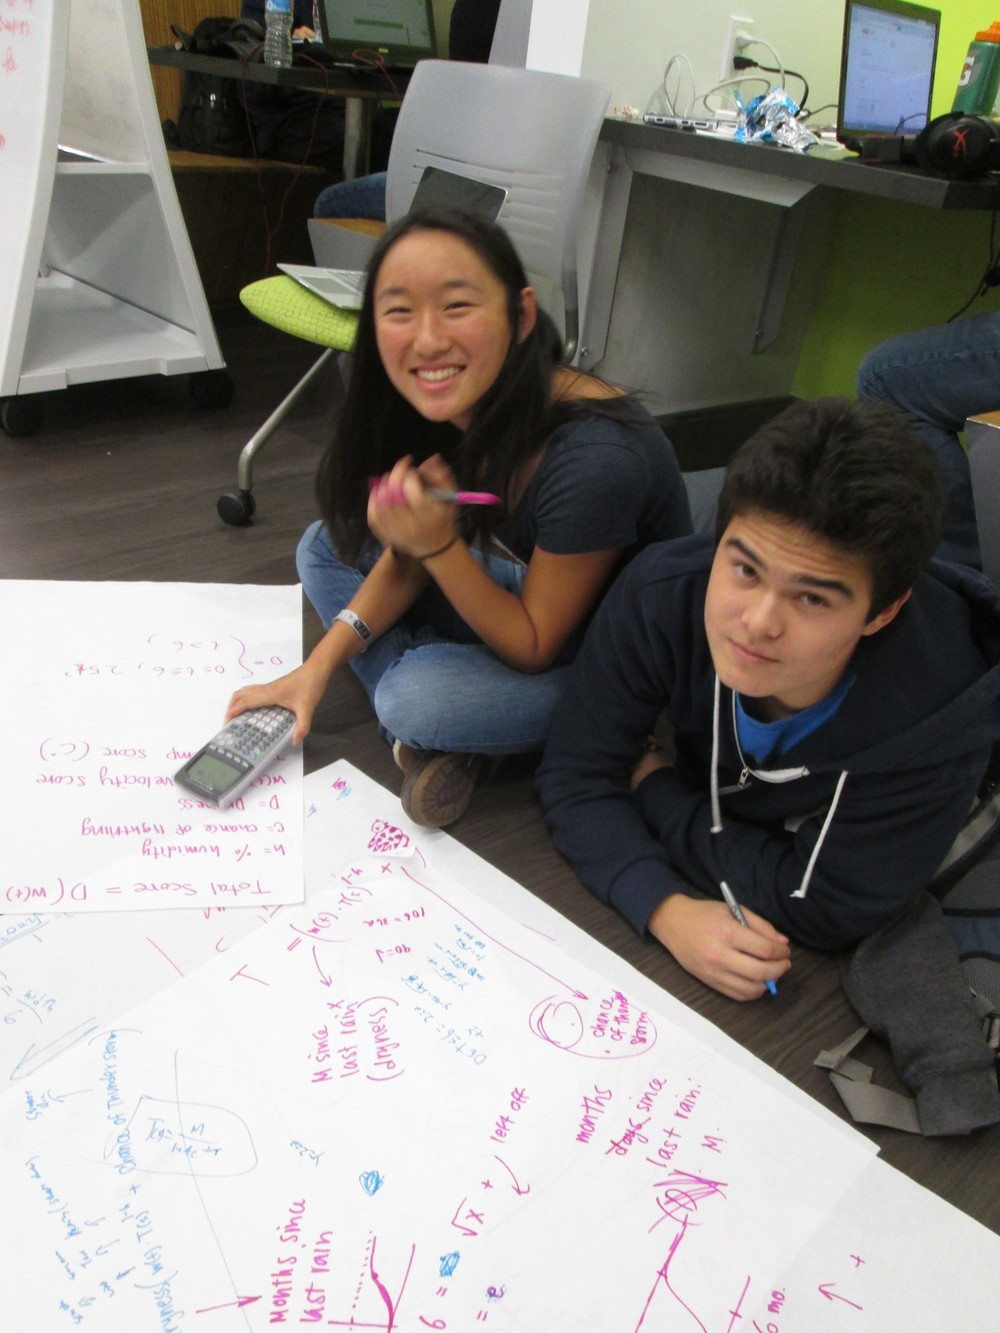 Getting down to it: working out algorithm at TeenTechSF Civic Hackathon